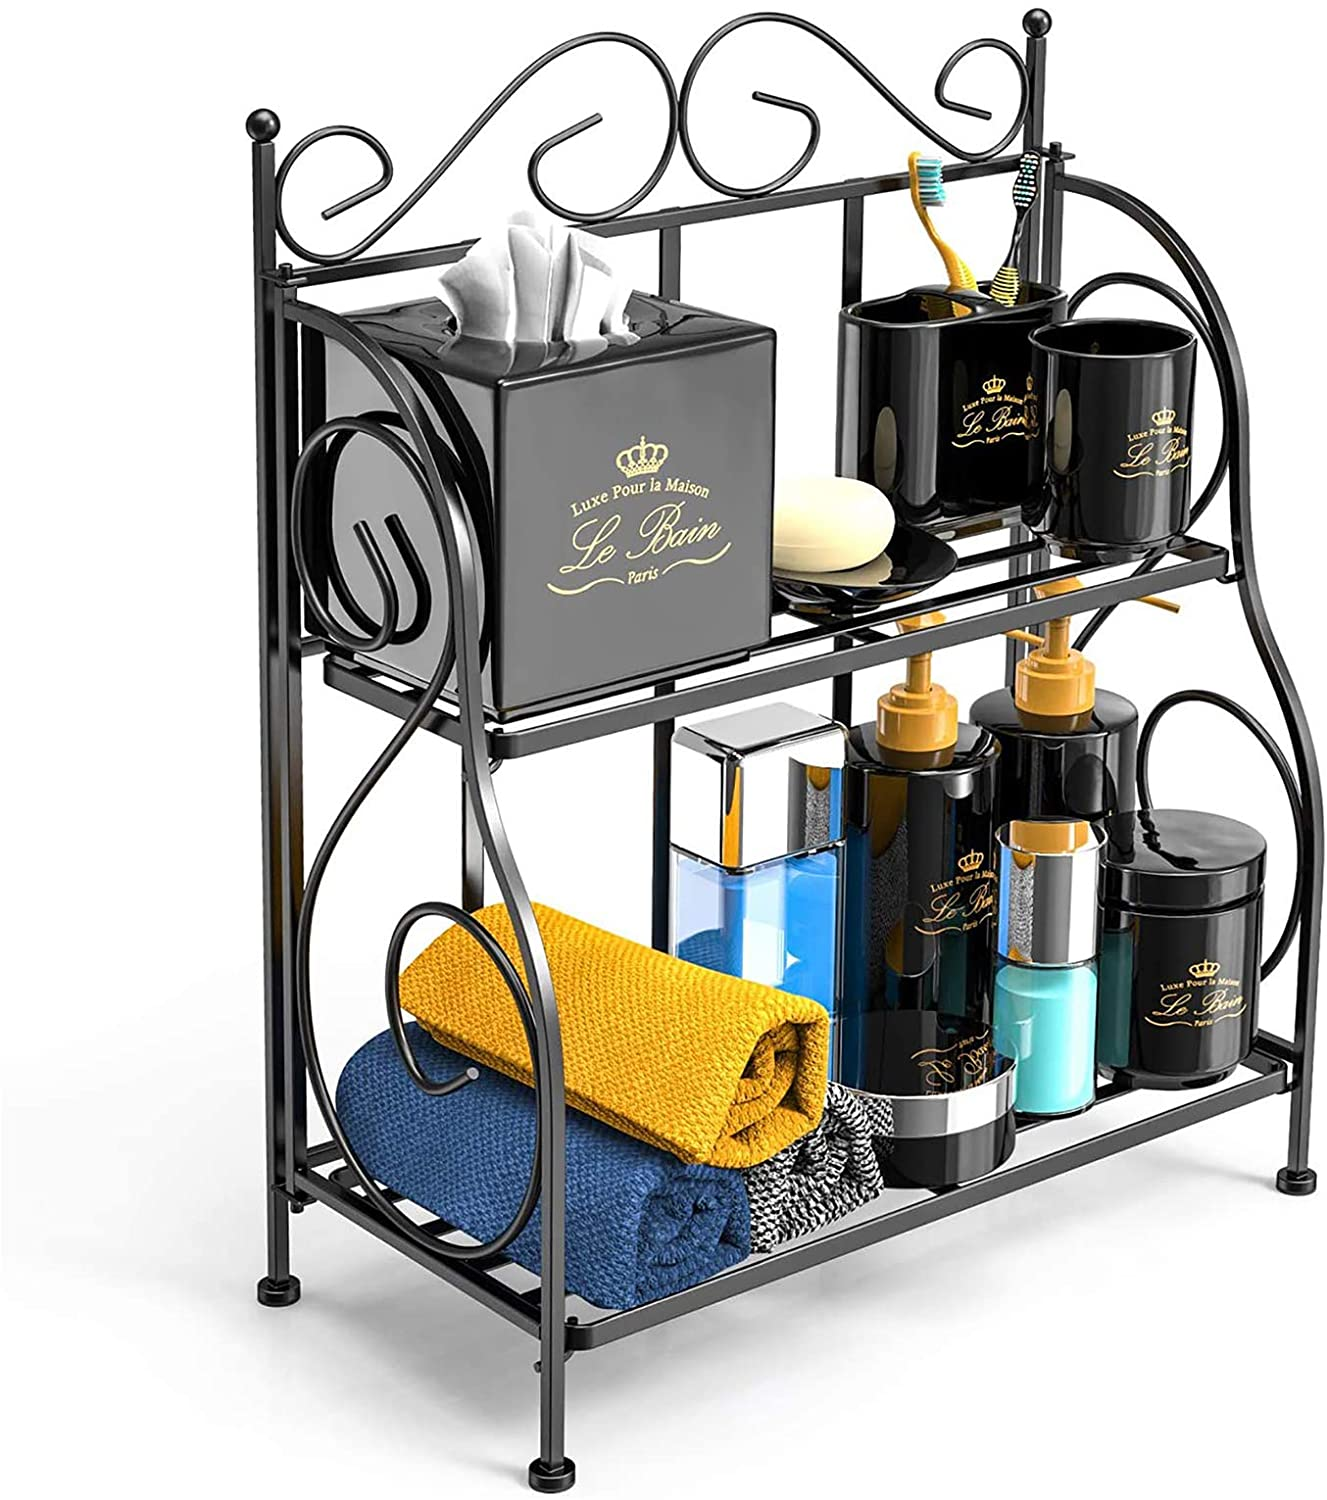 Bathroom & Kitchen Countertop Organizer